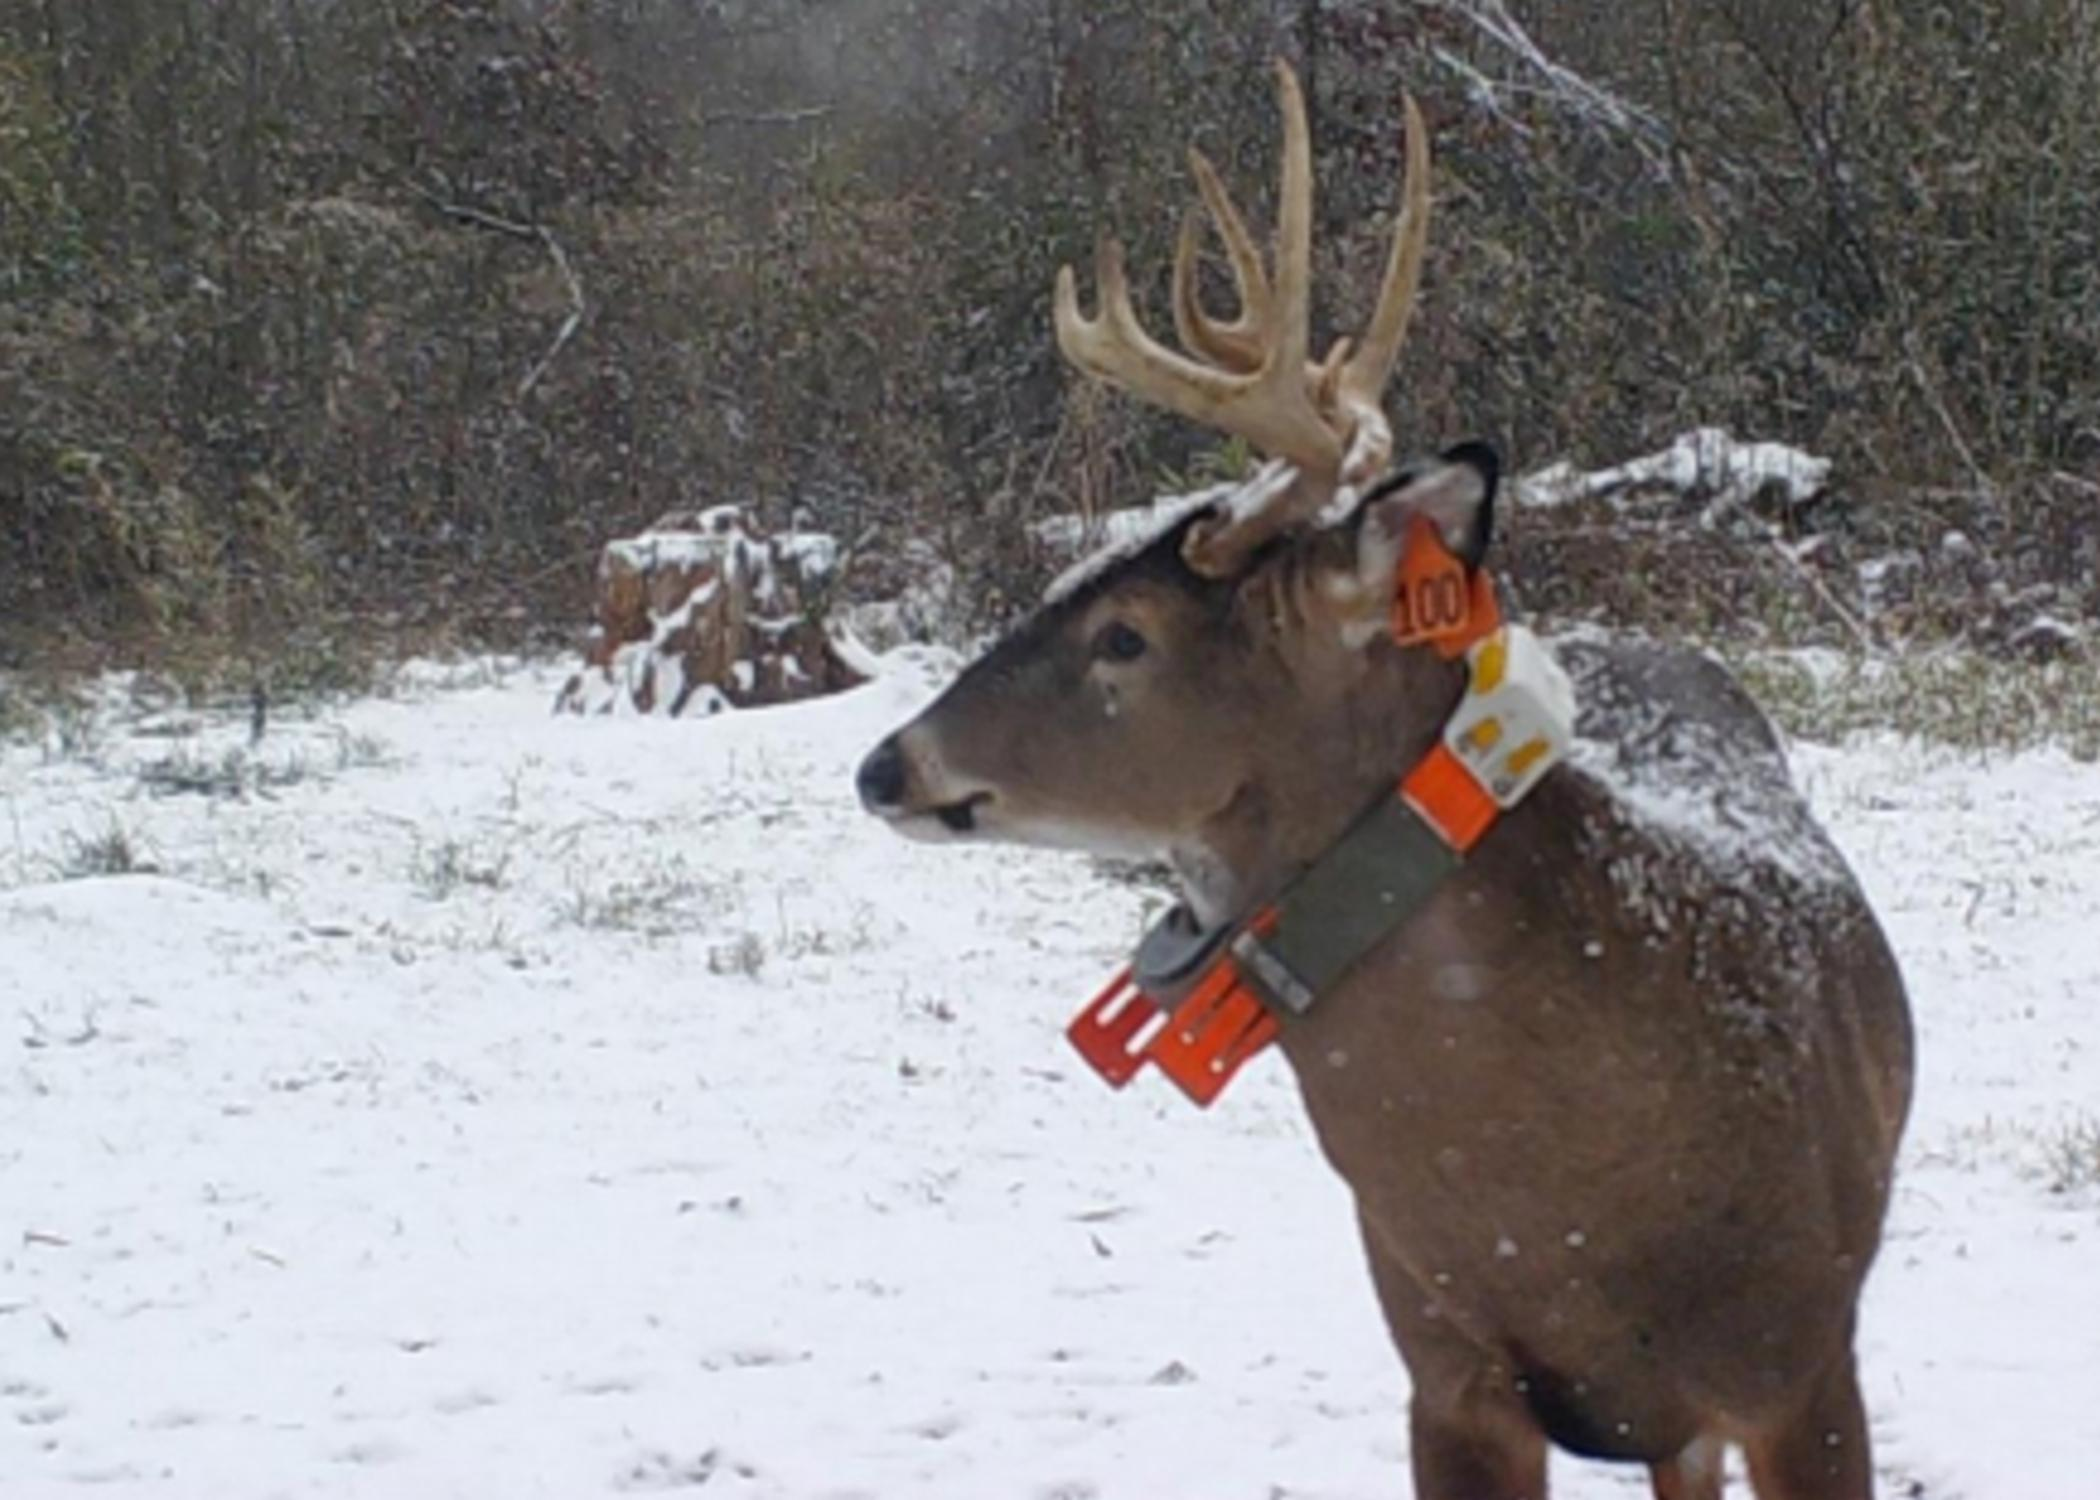 A deer with antlers standing in the snow.